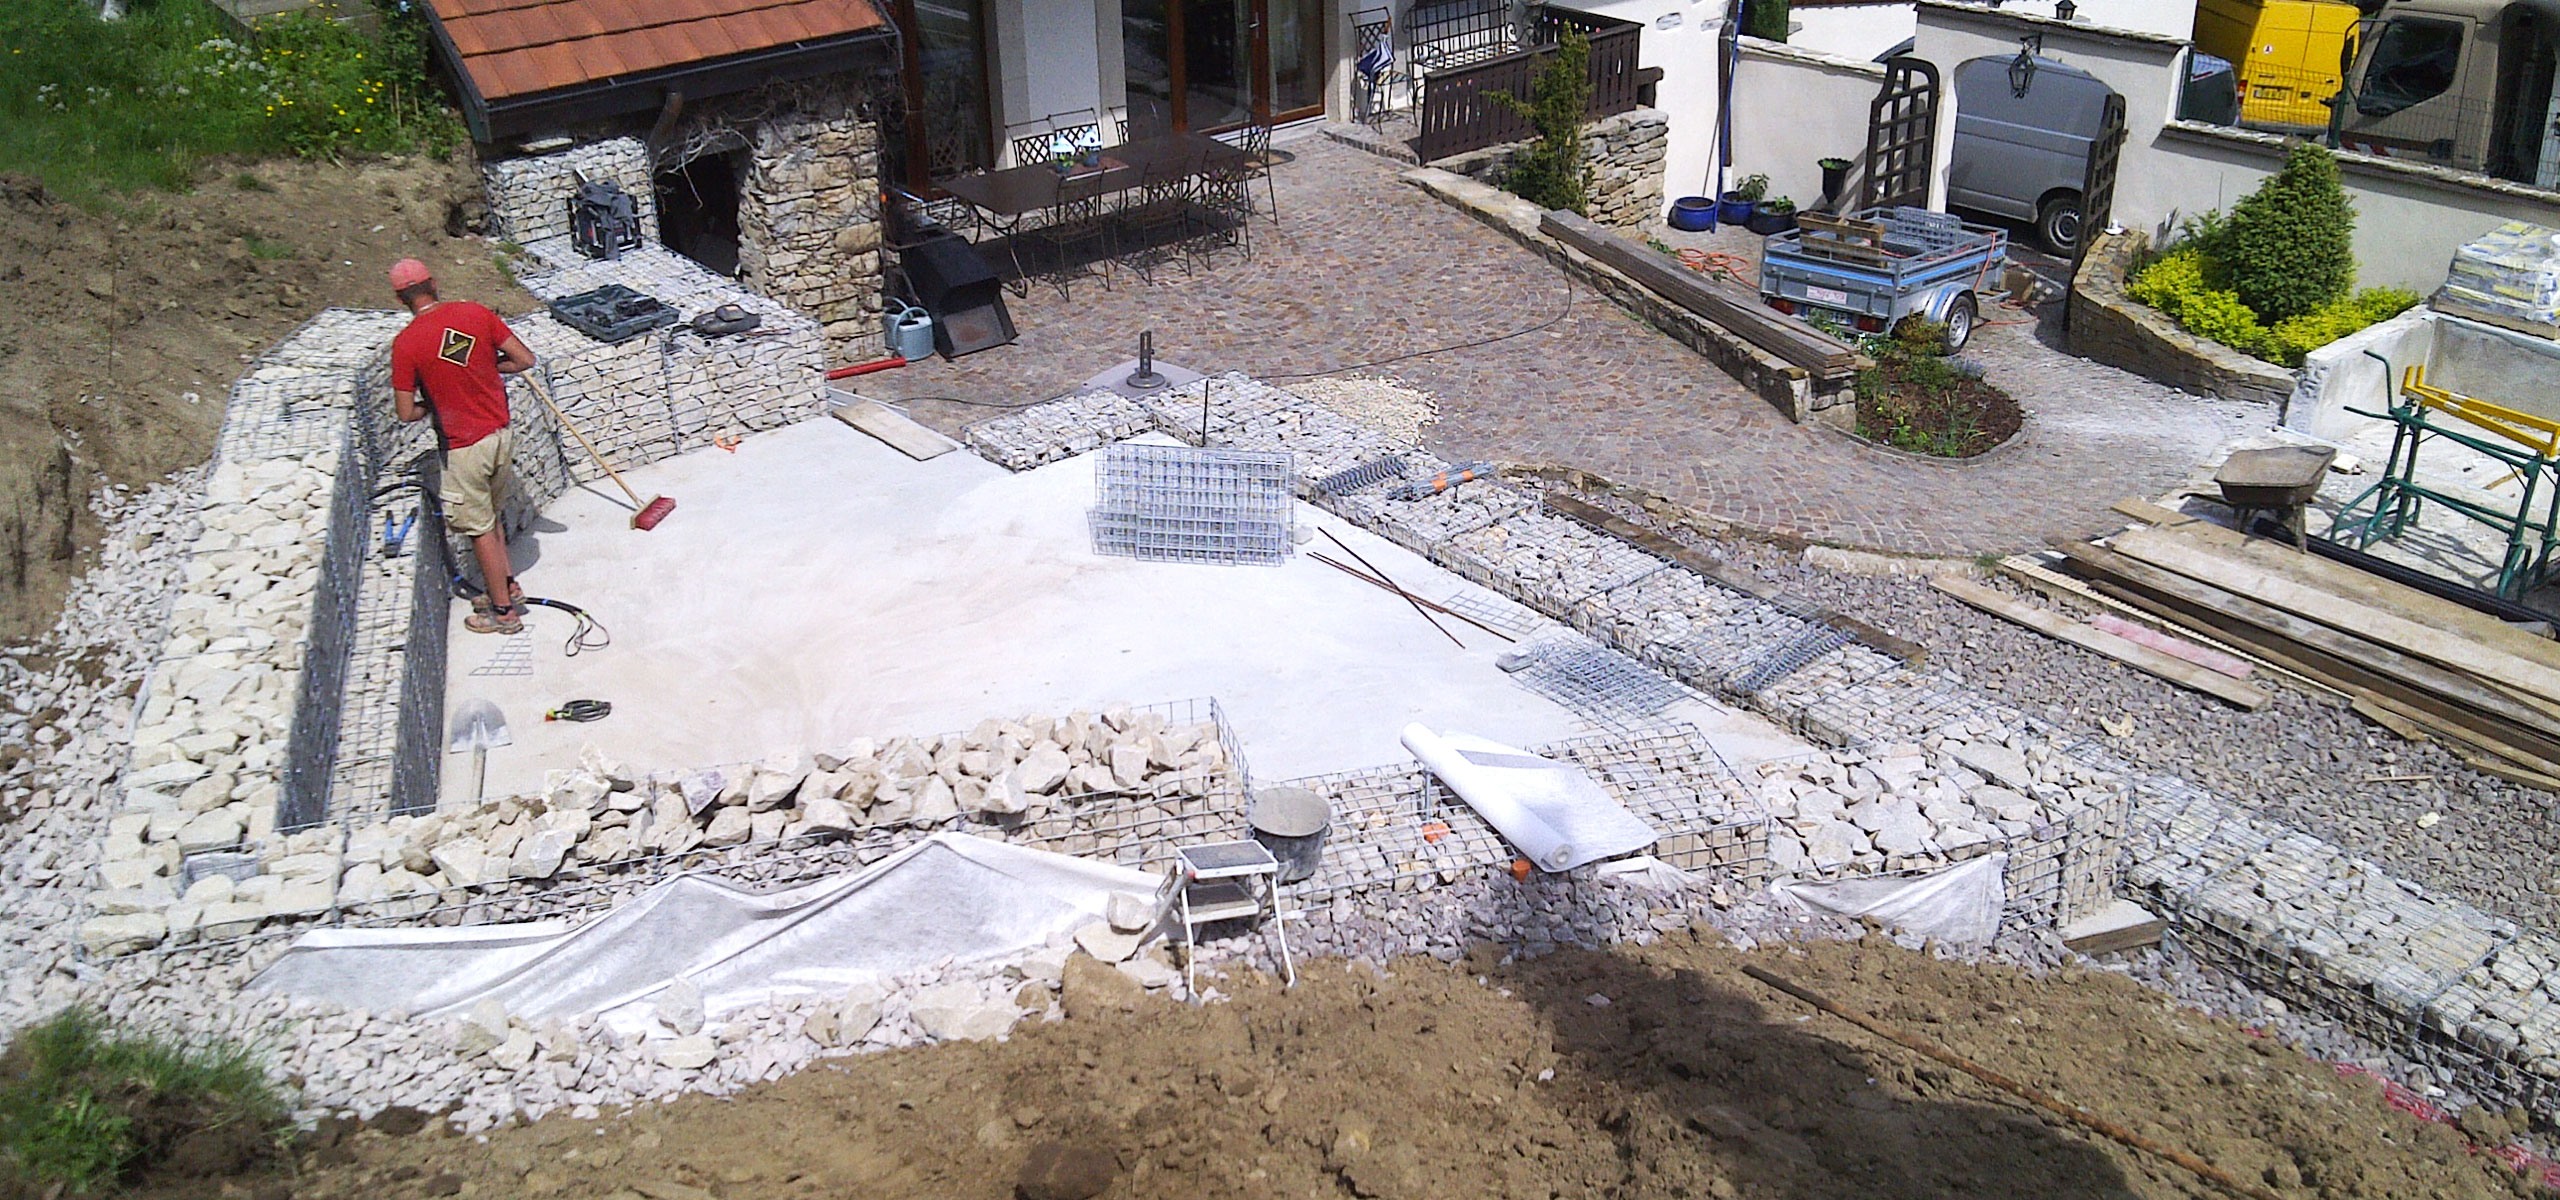 Am nagement ext rieur gabion condevaux for Entreprise amenagement exterieur